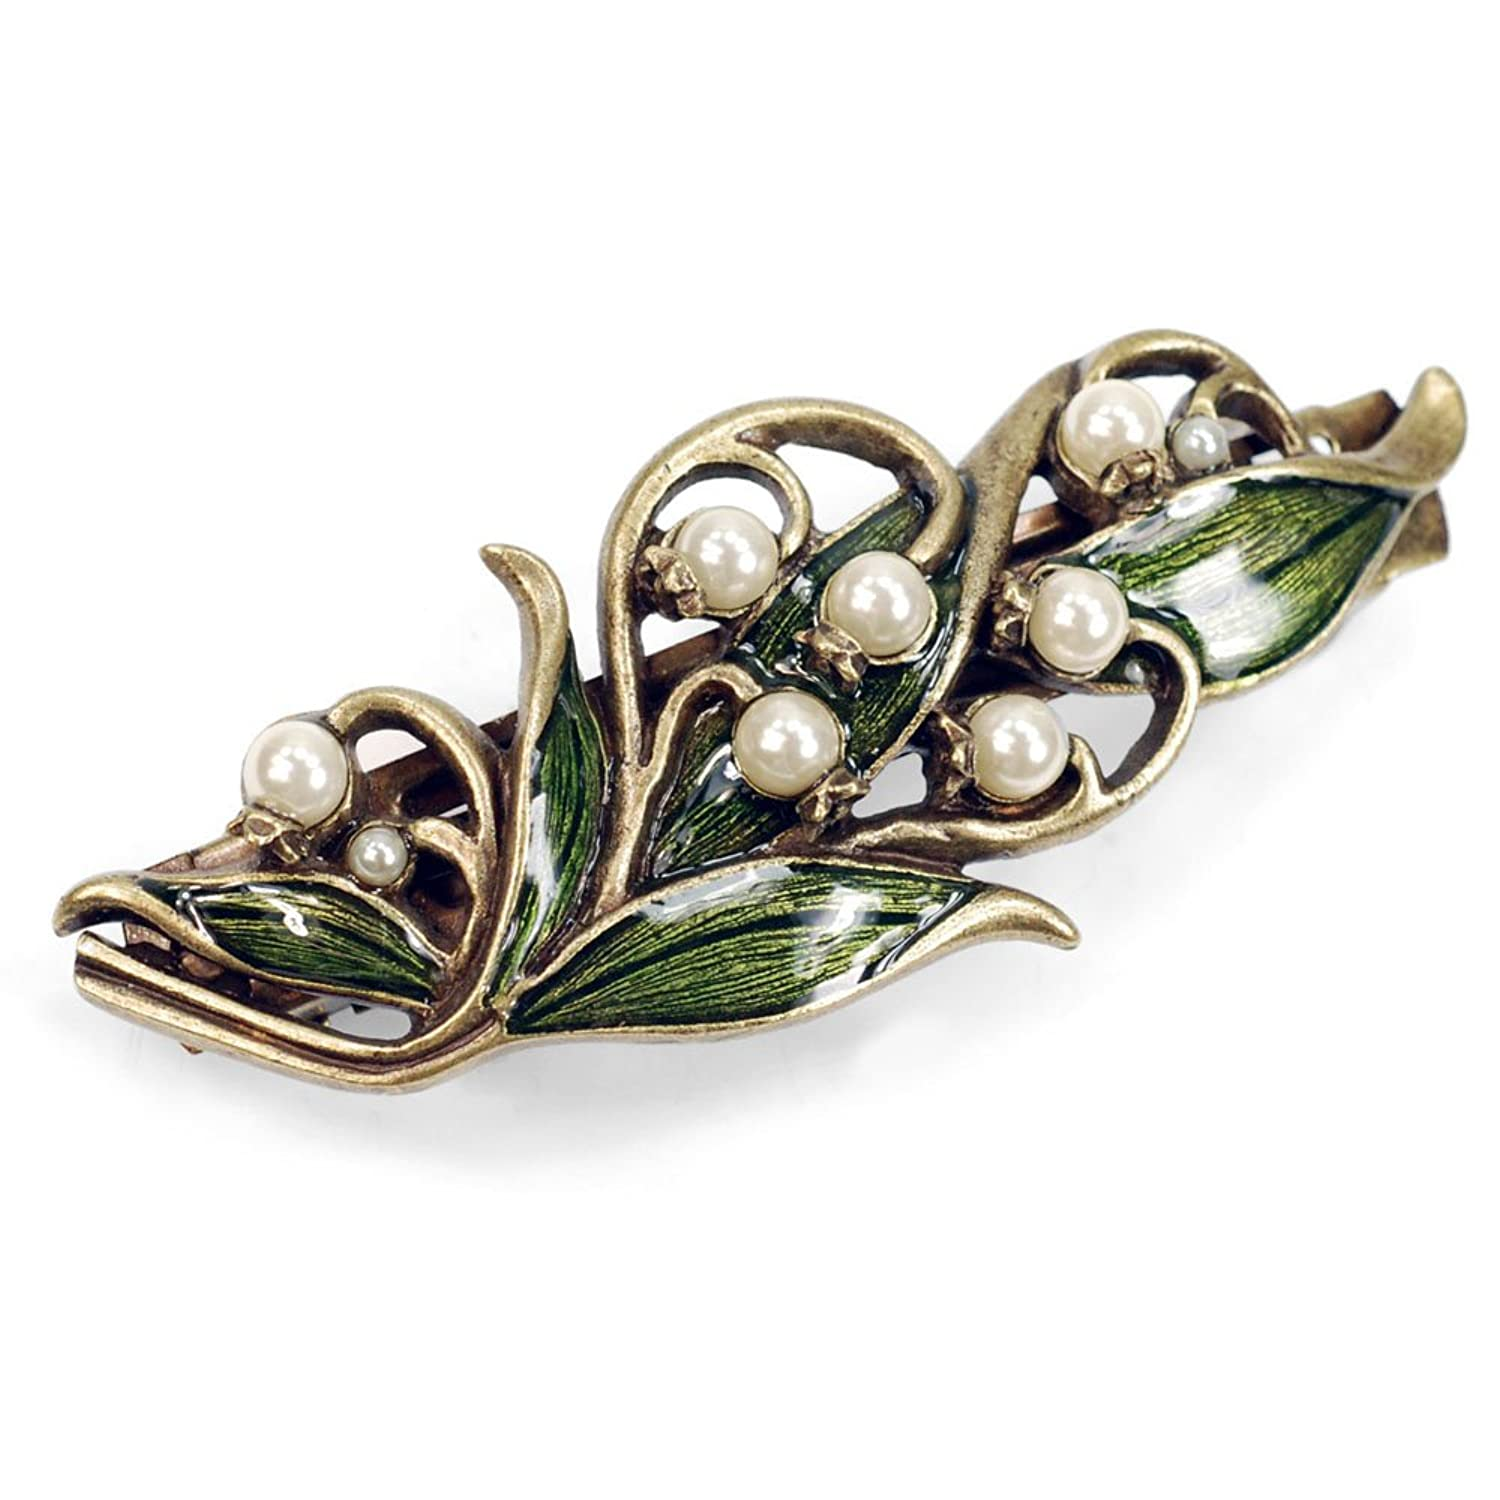 50s Jewelry: Earrings, Necklace, Brooch, Bracelet Vintage Lily of the Valley Bridal Flower Wedding Hair Barrette Clip $39.00 AT vintagedancer.com